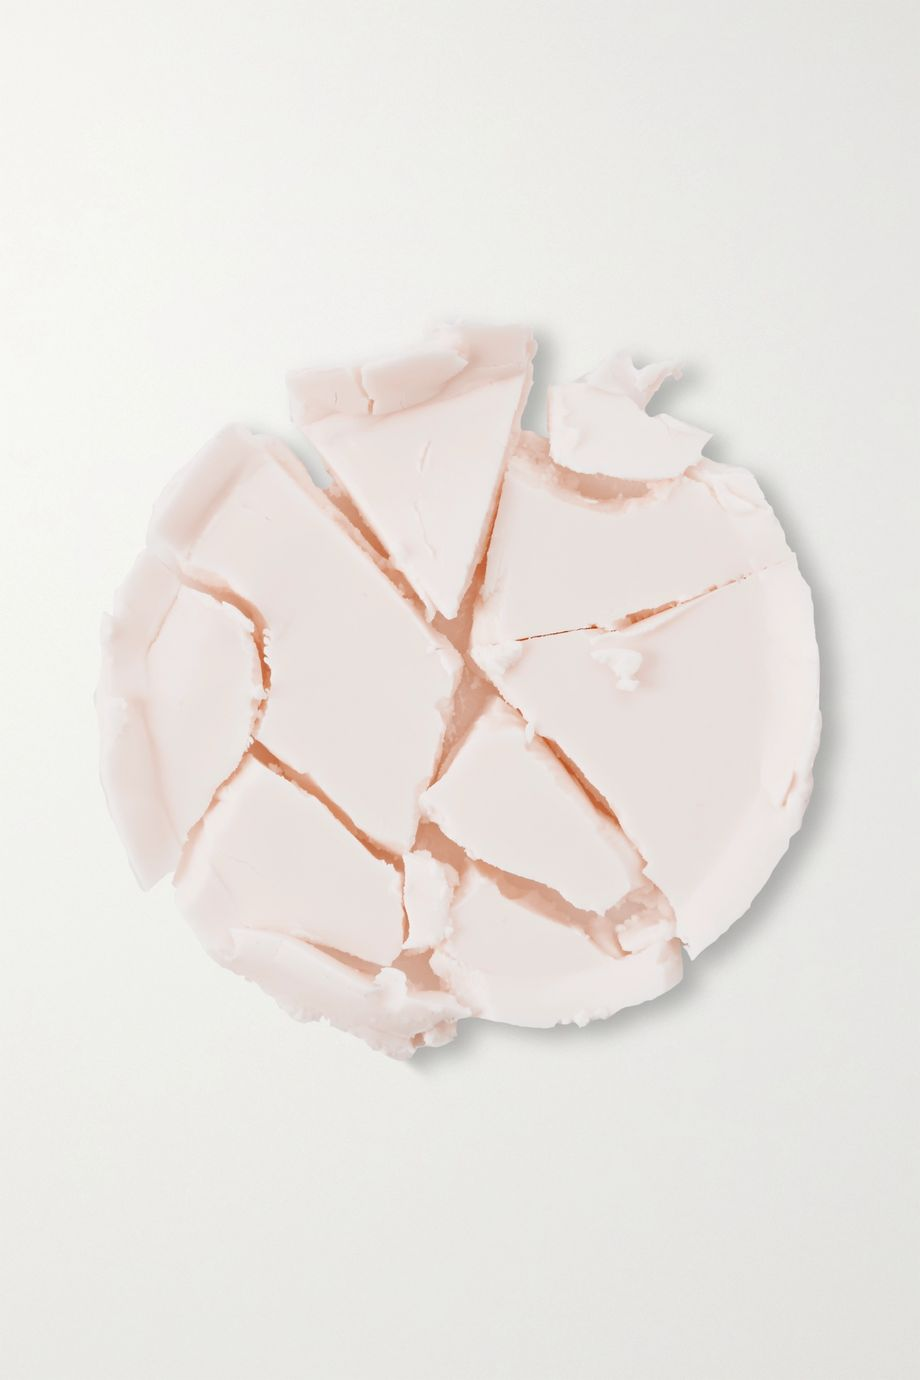 Perricone MD No Makeup Instant Blur – Priming-Balsam